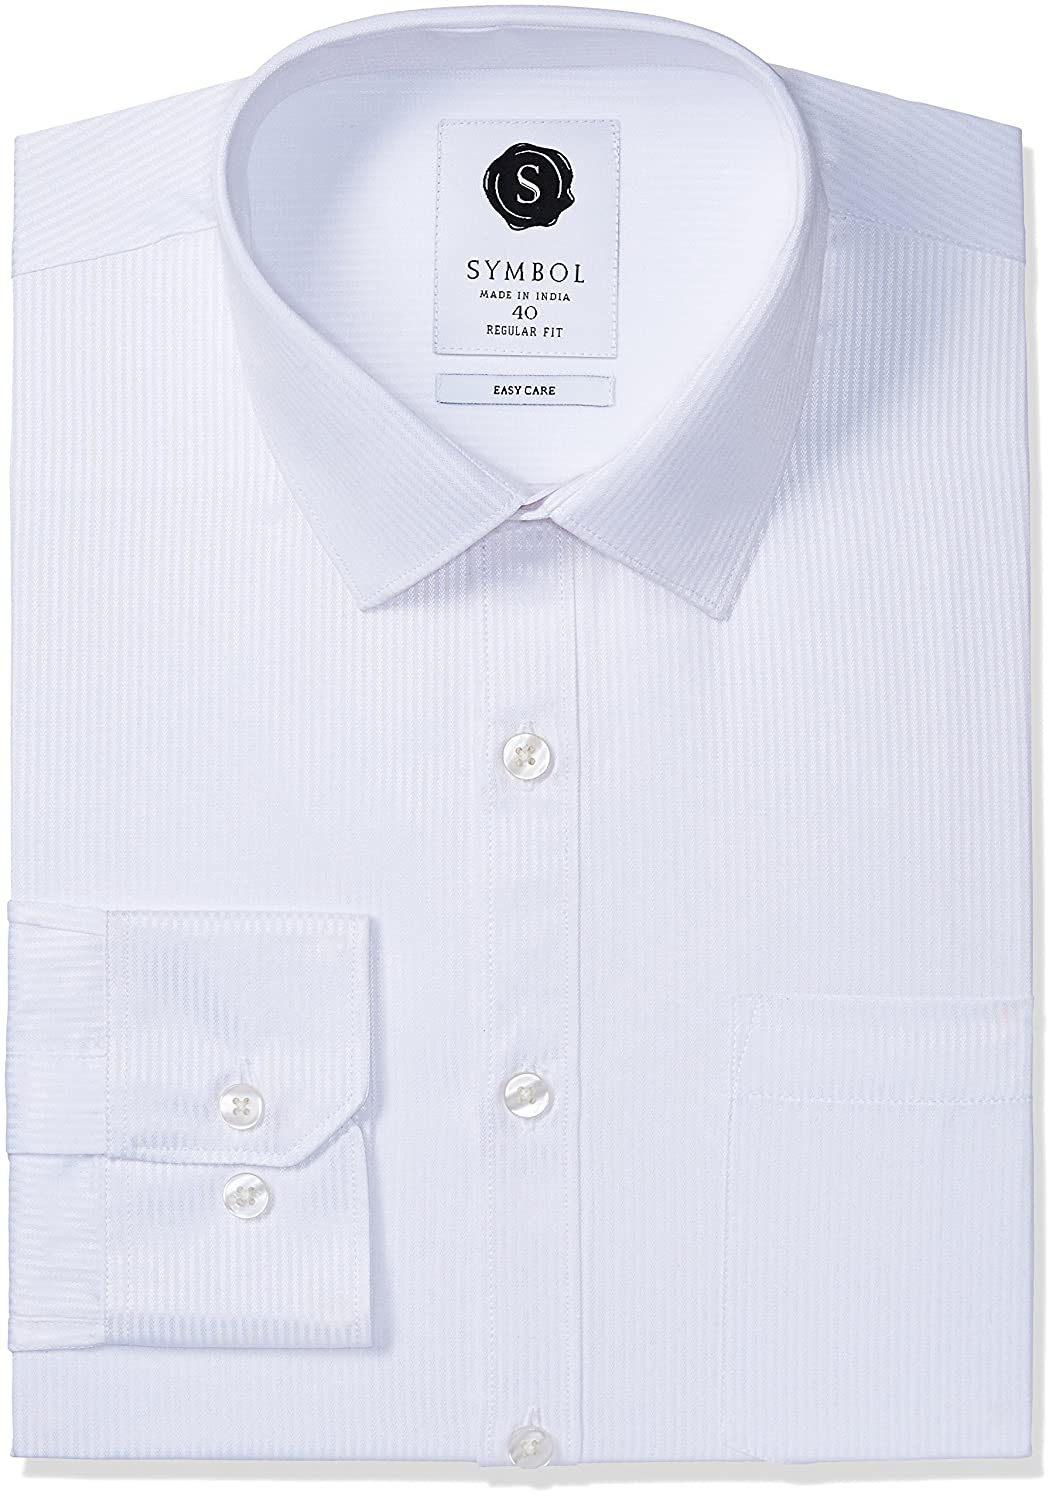 Deals on l Men's Formal Dobby Regular Fit Shirt